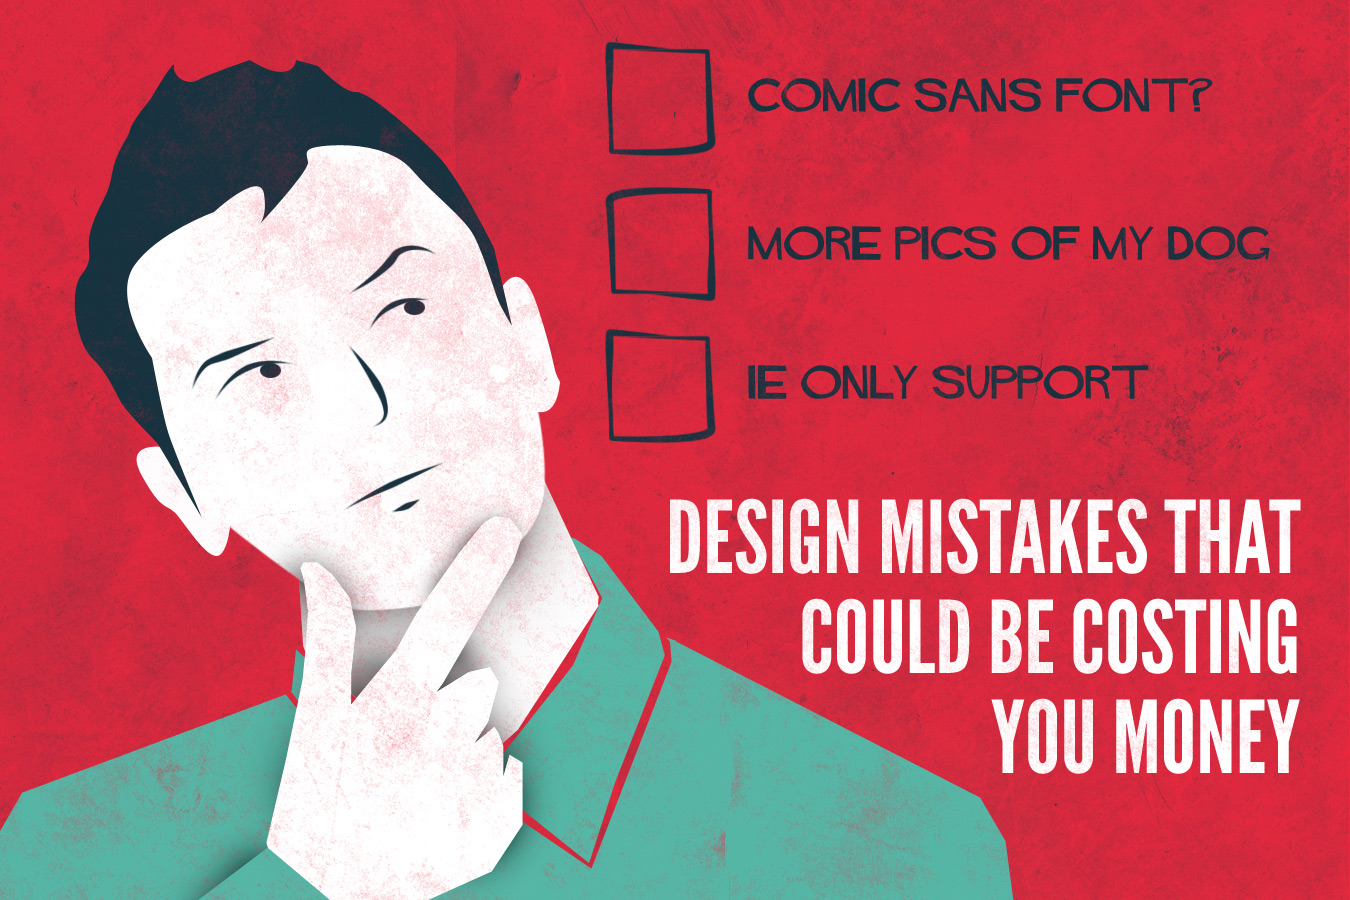 Design Mistakes that could be Costing you Money